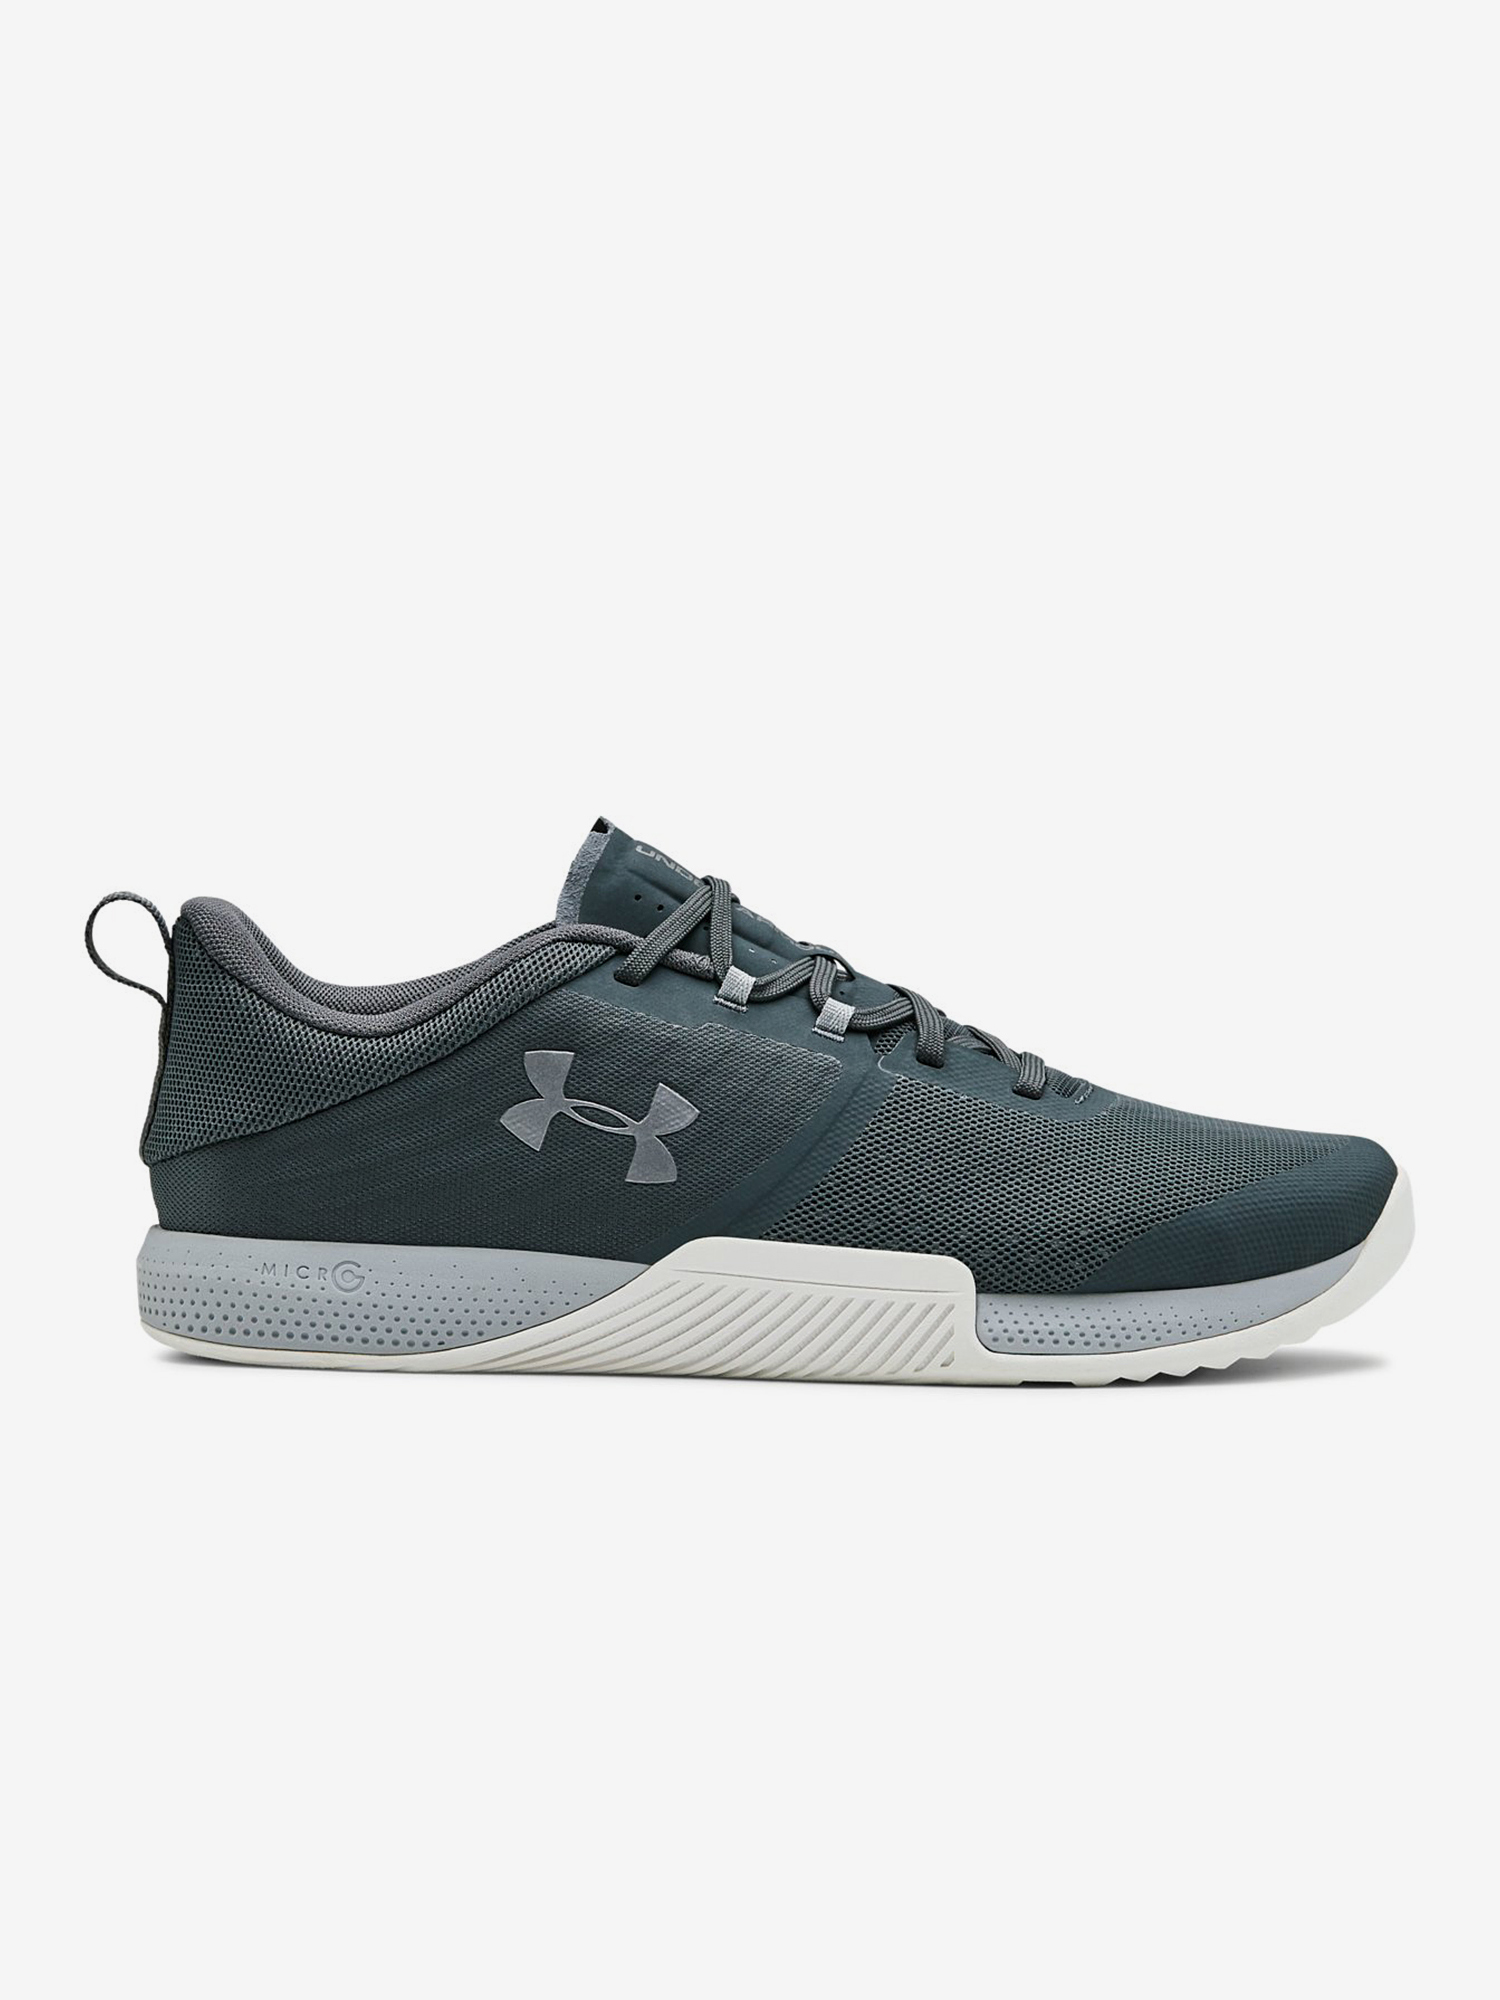 Boty Under Armour Tribase Thrive-Gry Šedá